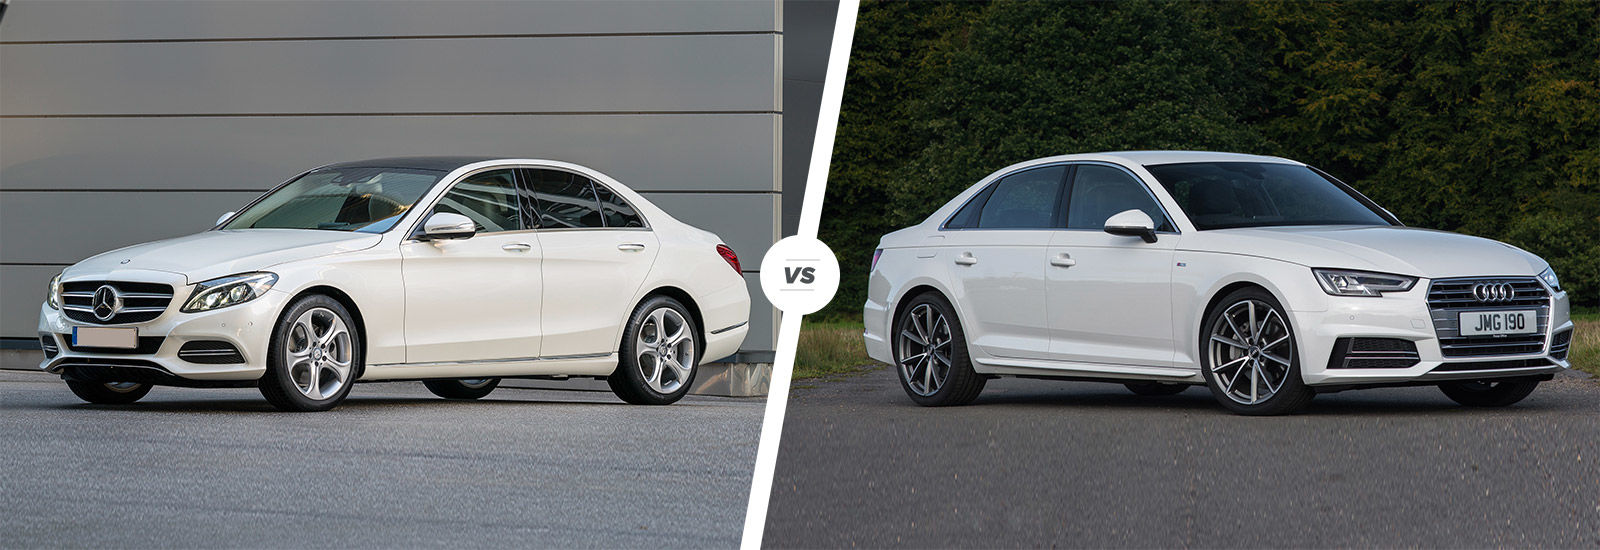 mercedes c-class vs audi a4 comparison | carwow